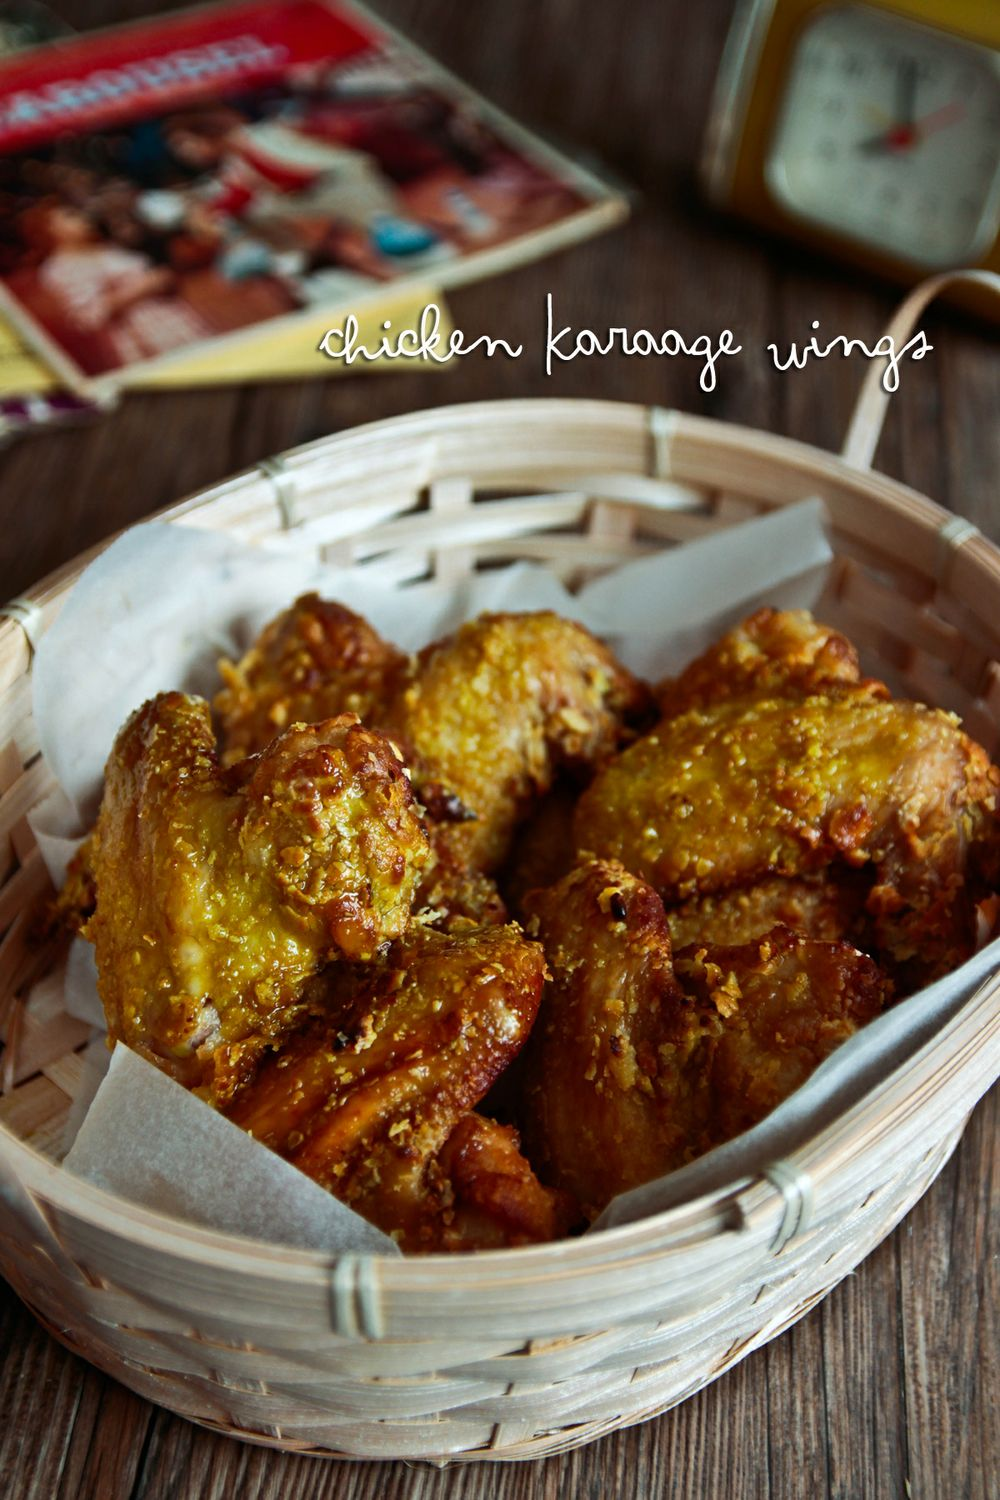 m-karaage-chicken-wings-1-3